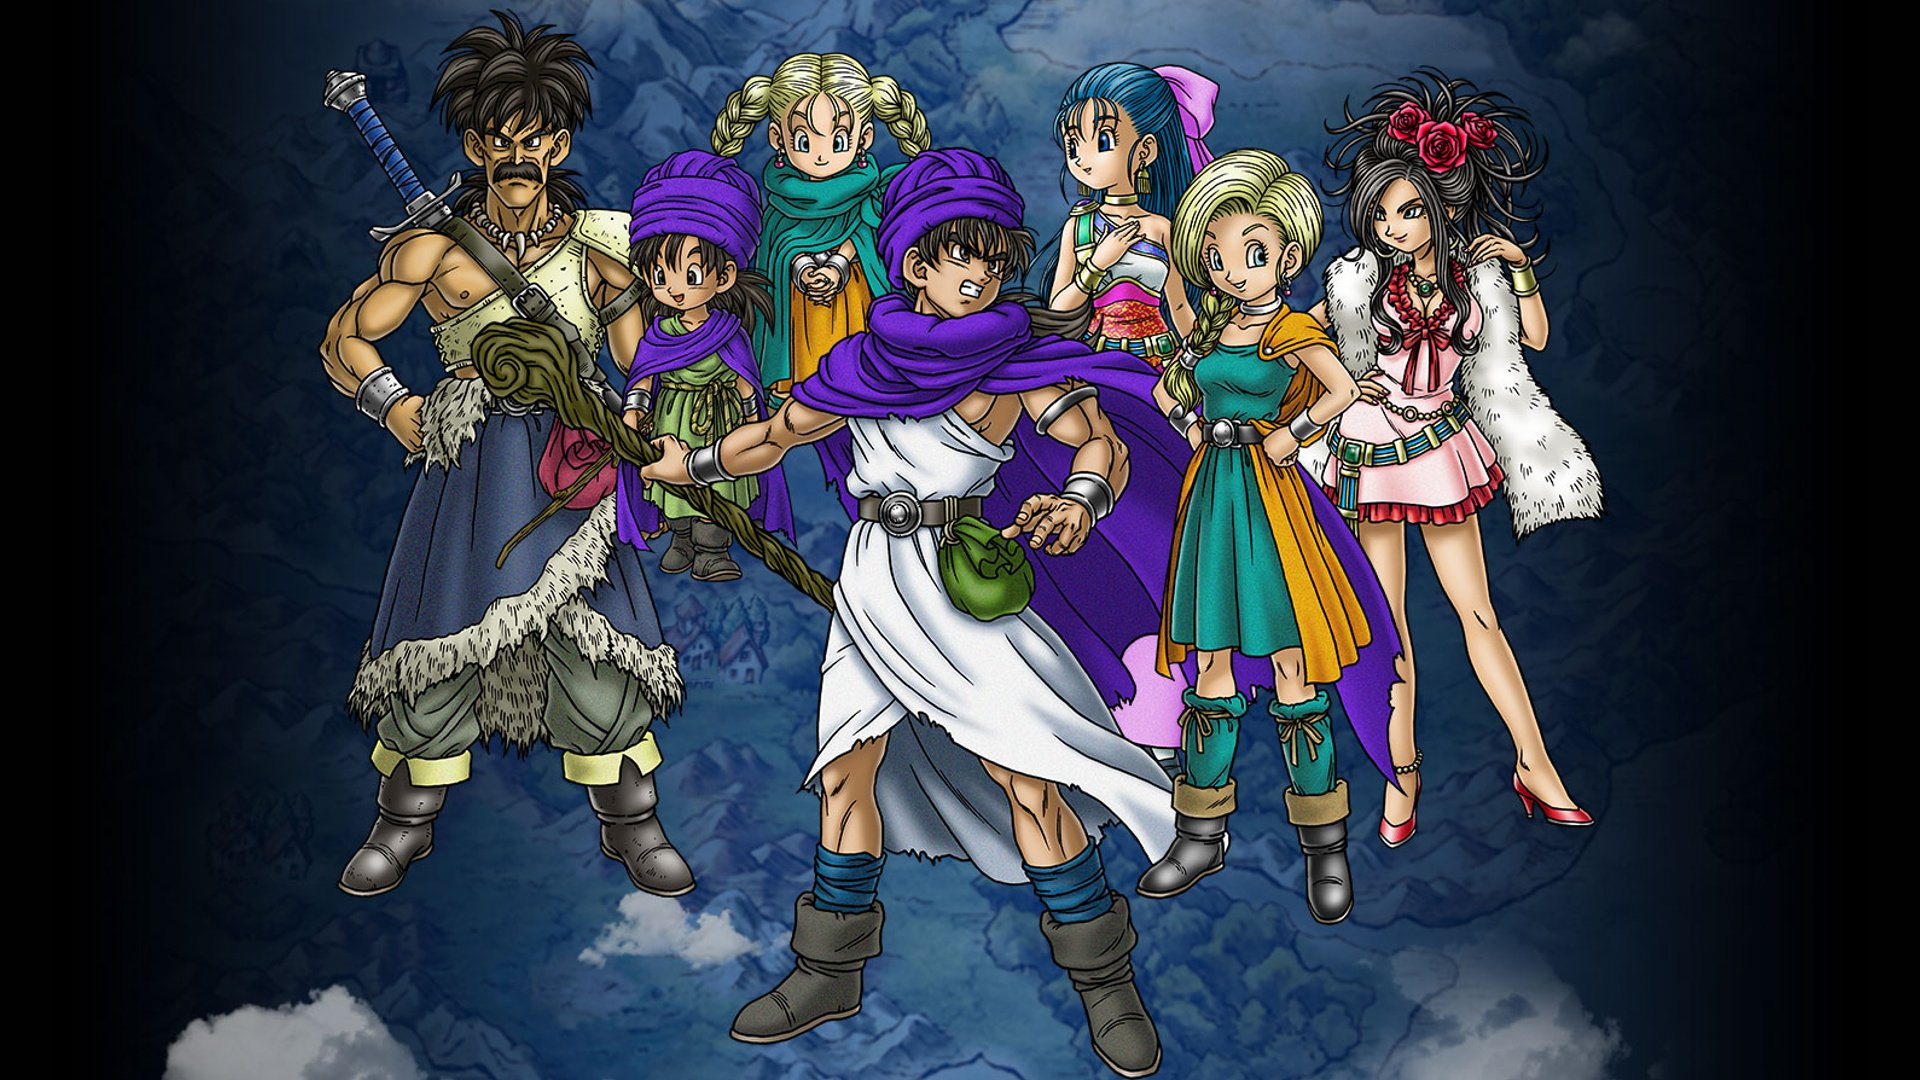 Decade-Old DS Game Dragon Quest V Re-Entered The Japanese Charts This Week